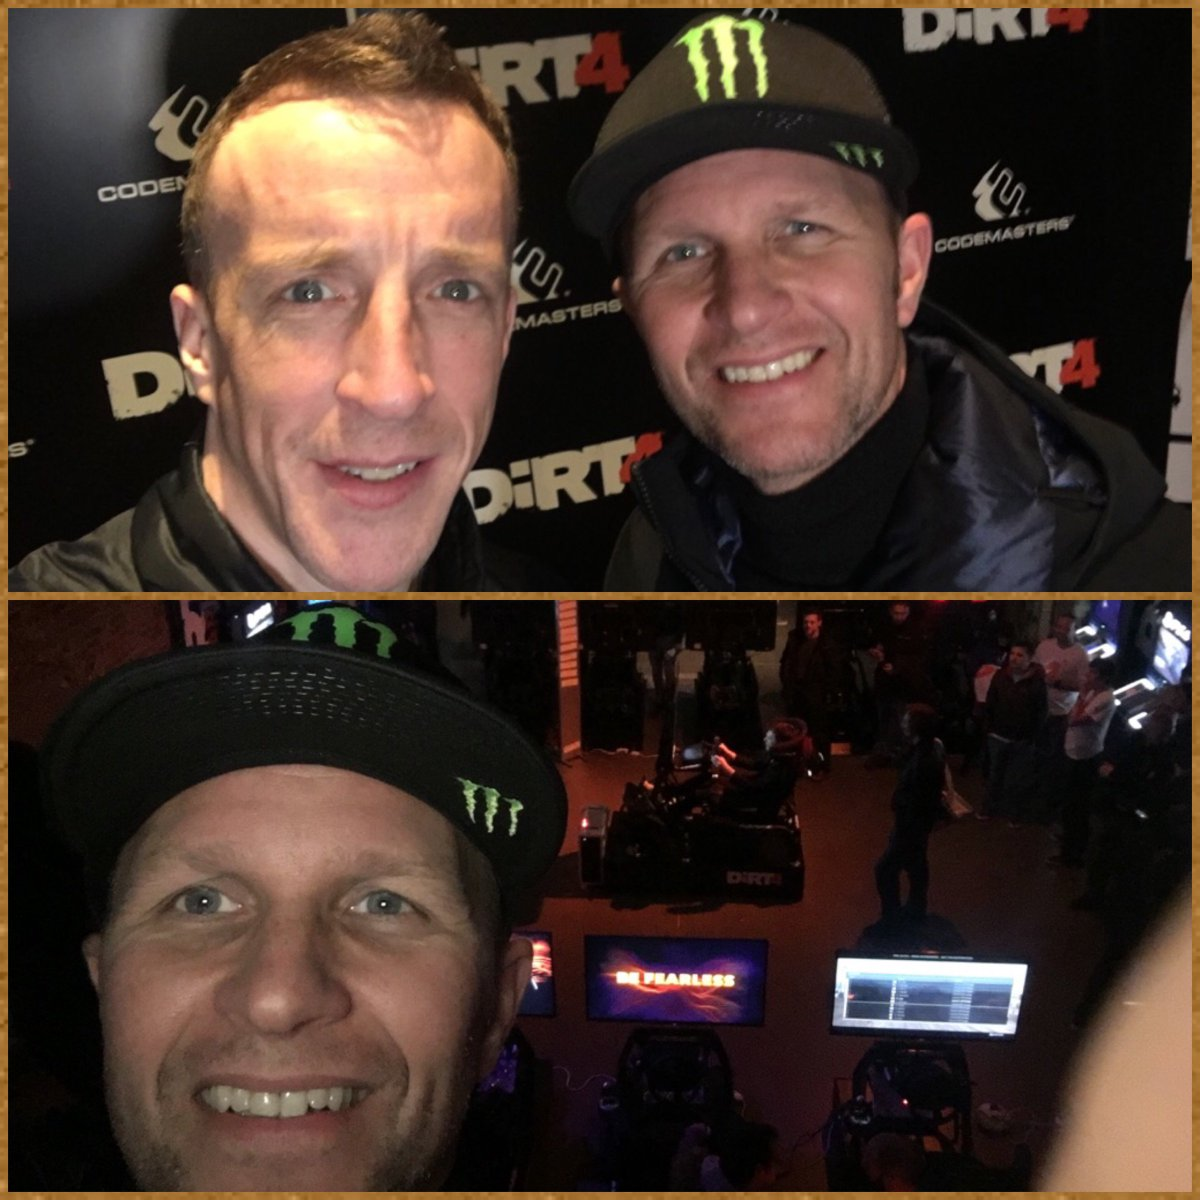 Petter solberg rx on twitter what to do when other rally games petter solberg rx on twitter what to do when other rally games just aint good enough get involved with the best one yourself dirt4 solutioingenieria Image collections